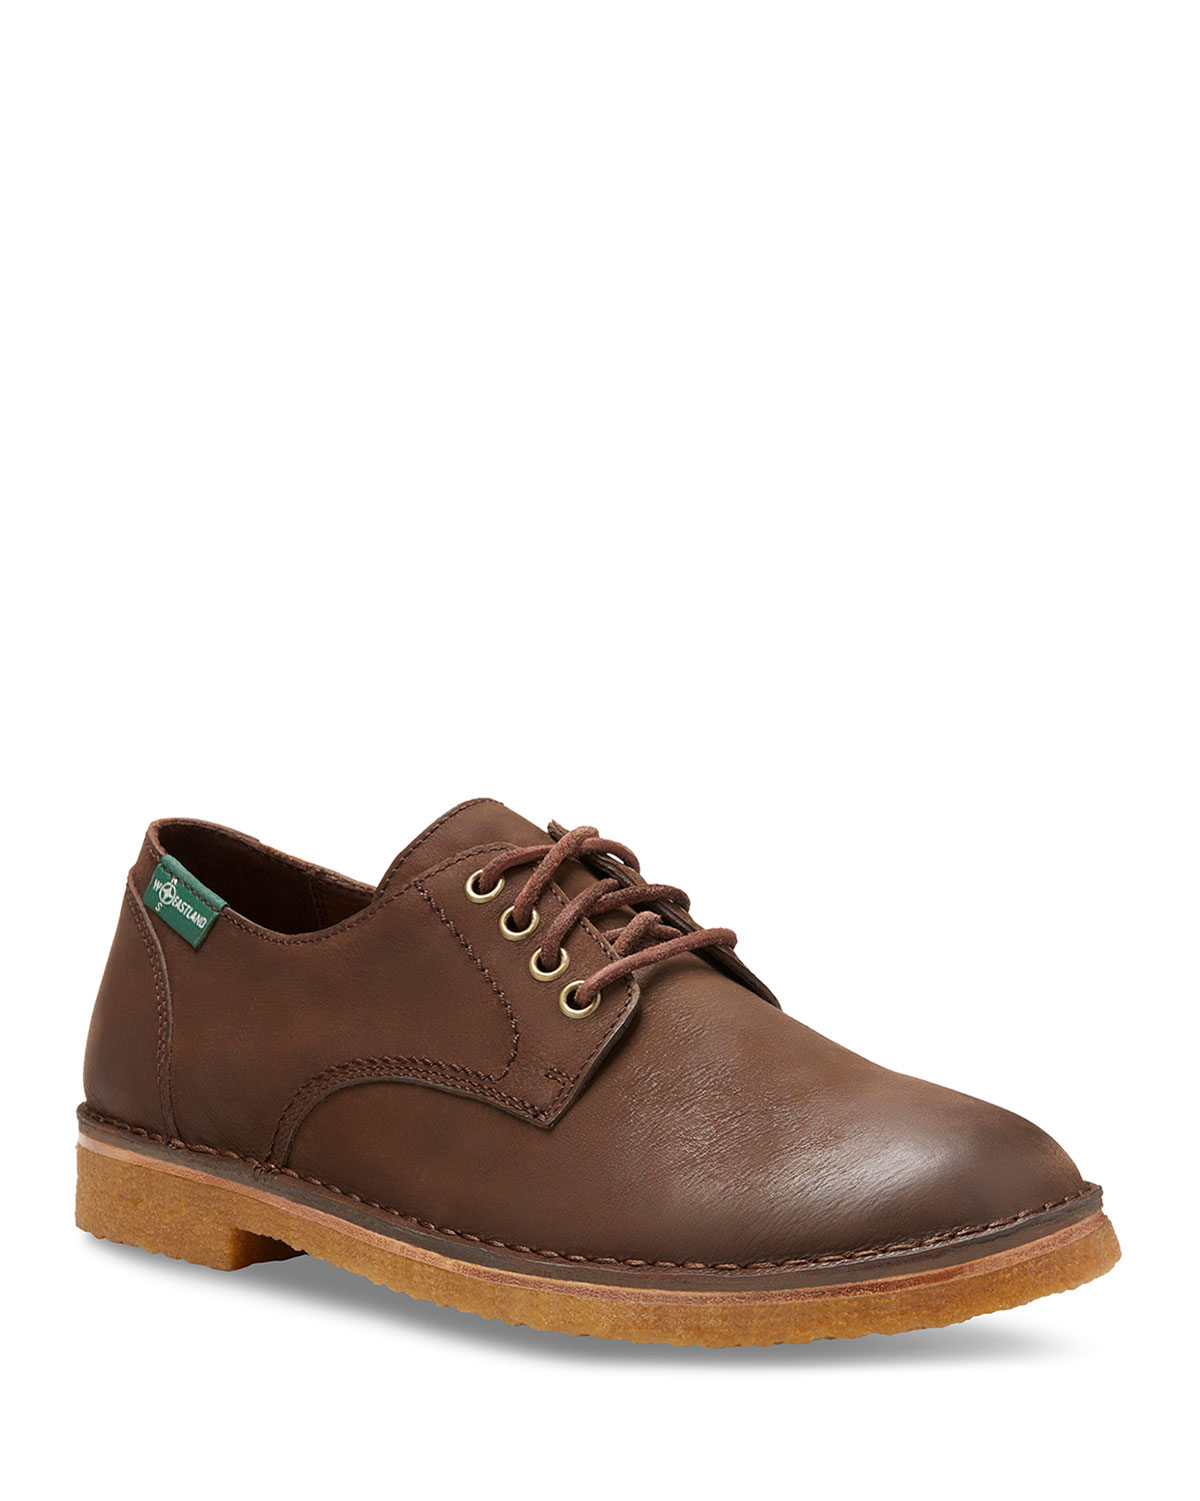 EASTLAND Men'S Morris 1955 Leather Lace-Up Shoes in Brown